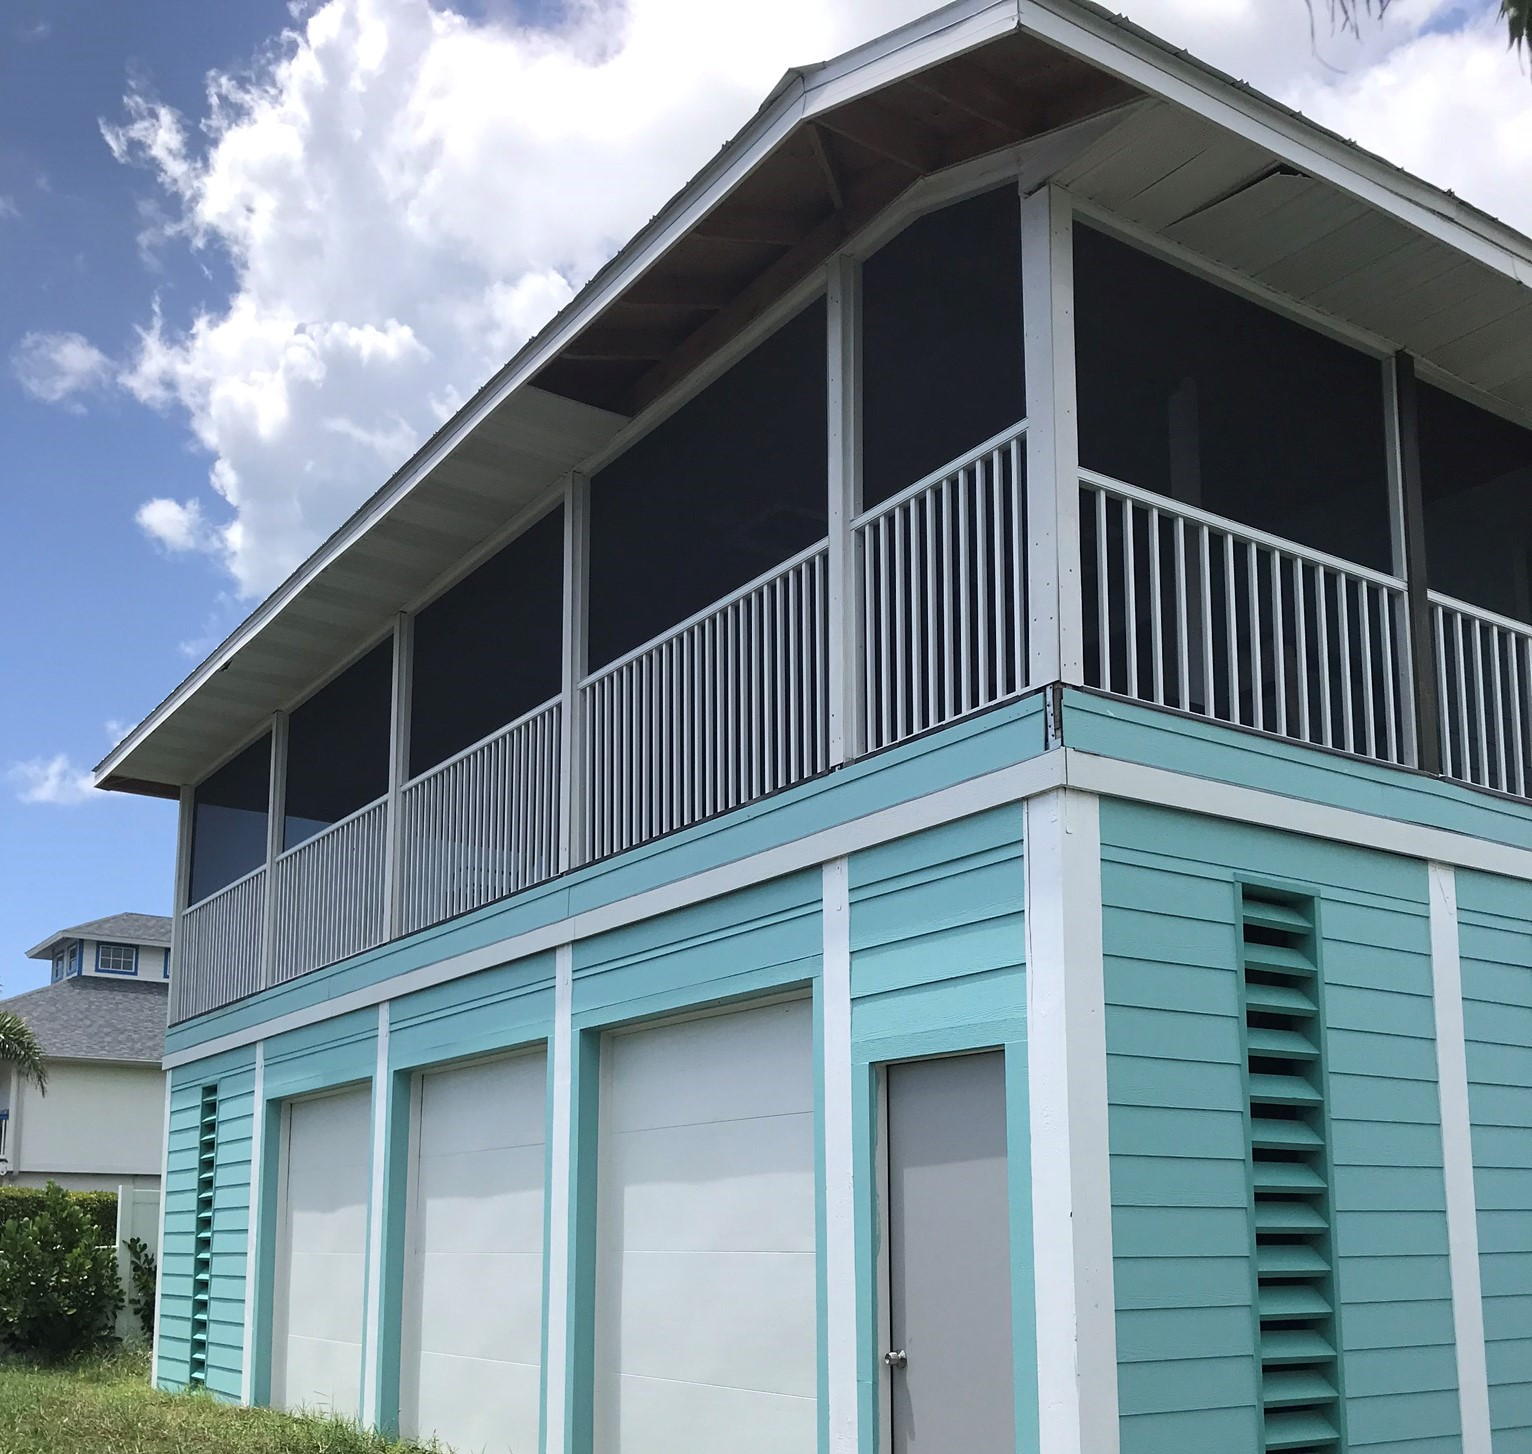 1970 Stilt Home on water - Naples FL